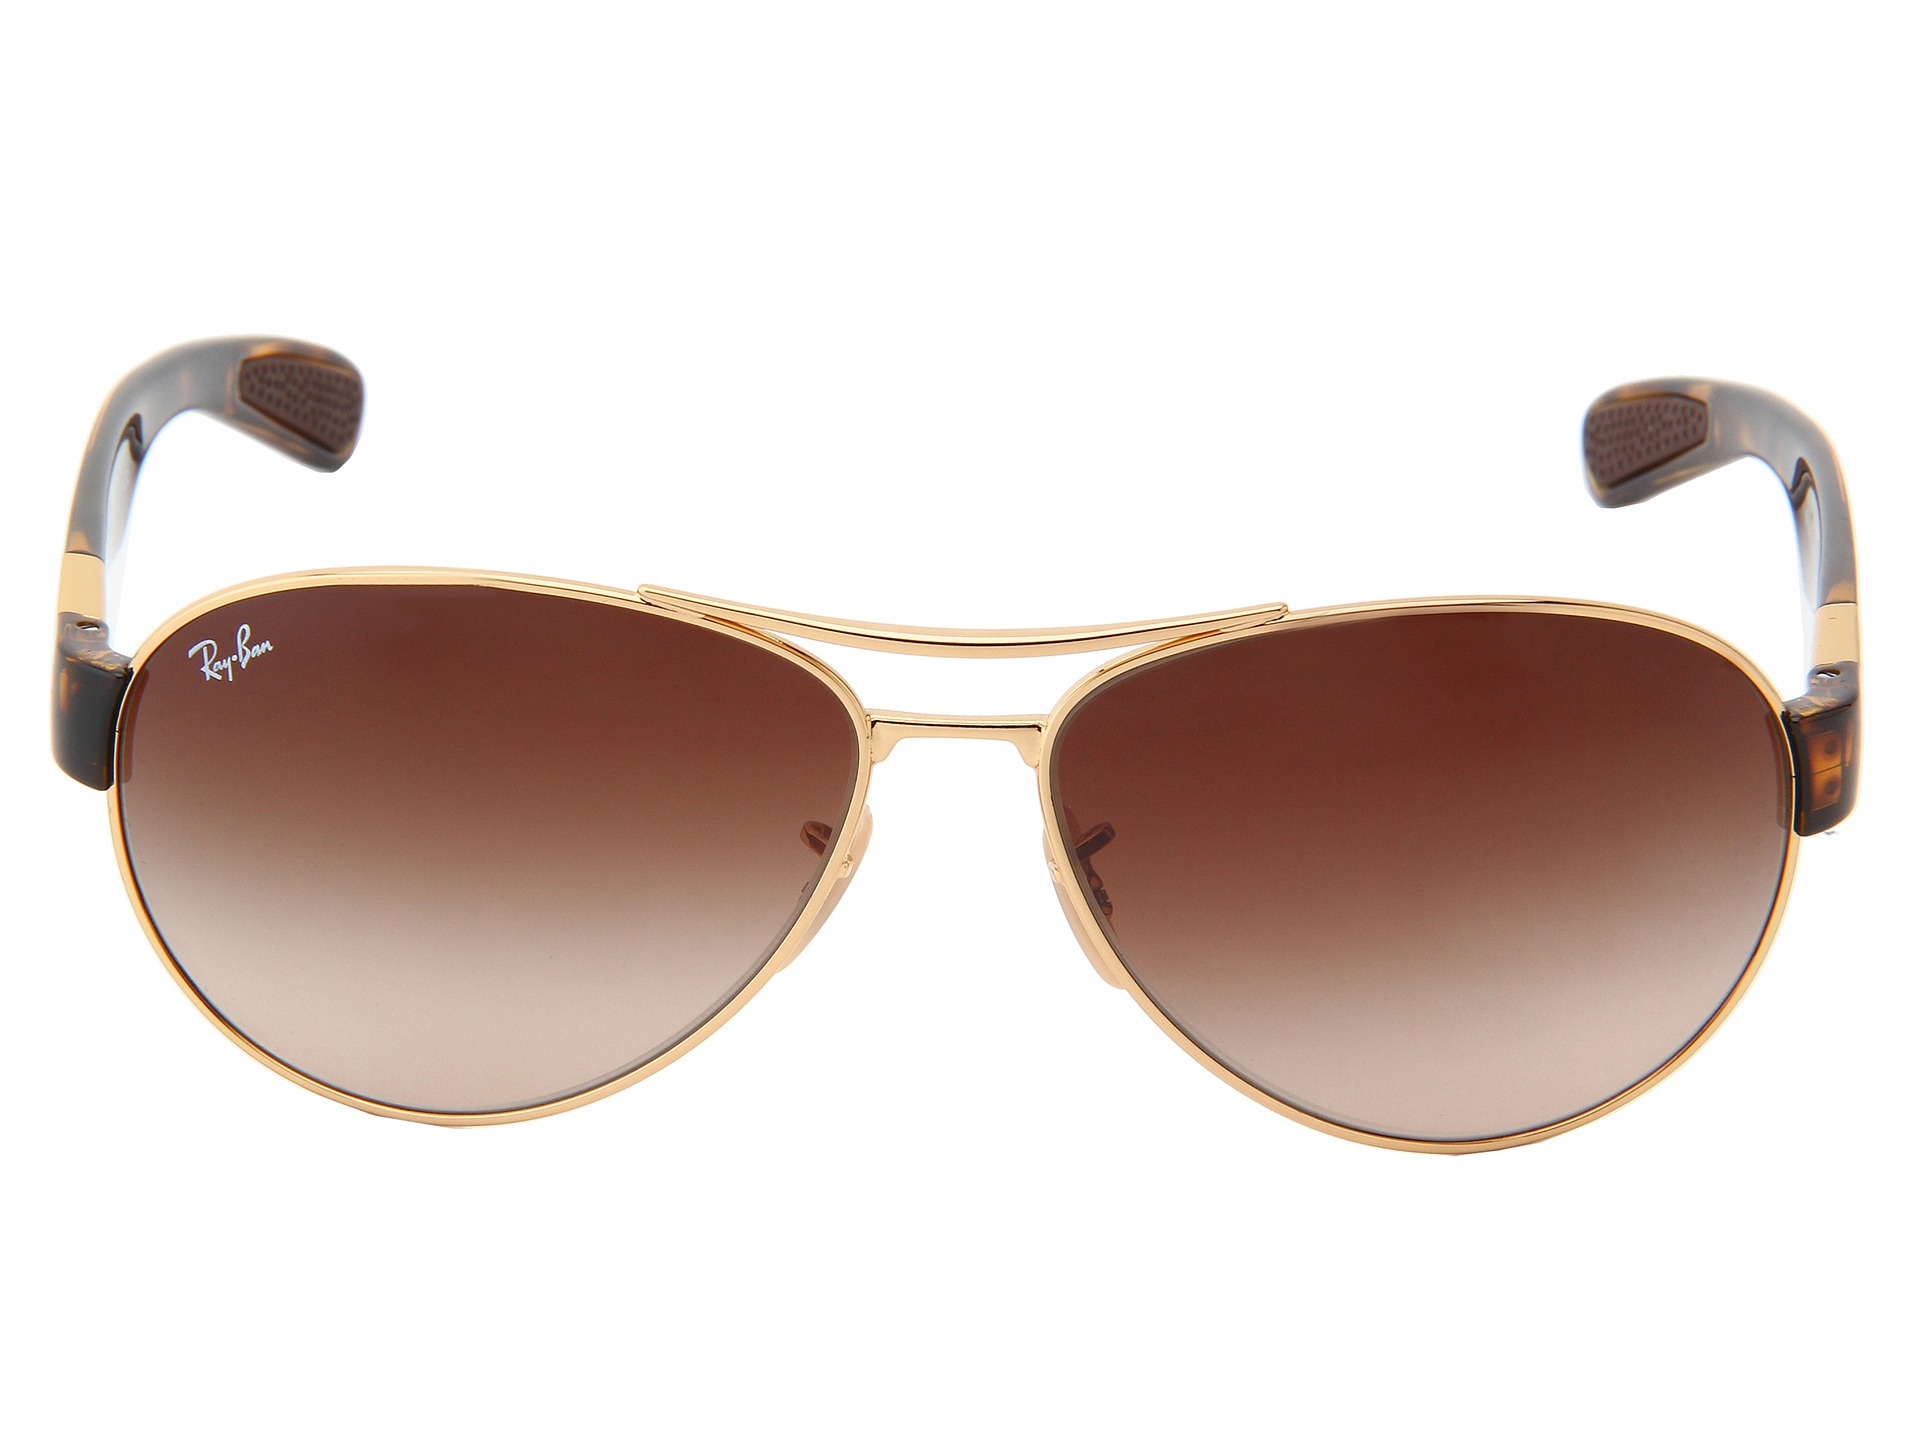 rb3509  Ray-Ban RB3509 63mm - Zappos.com Free Shipping BOTH Ways